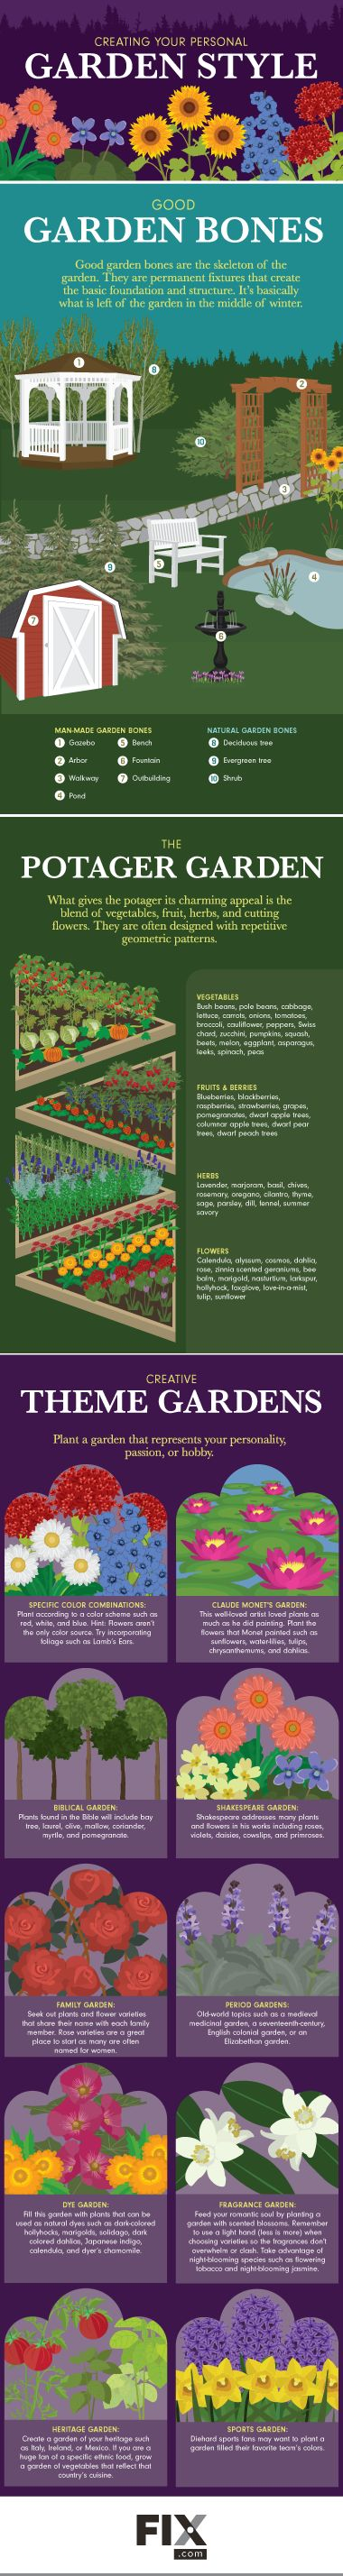 Creating Your Personal Garden Style - Choose the right garden for you!